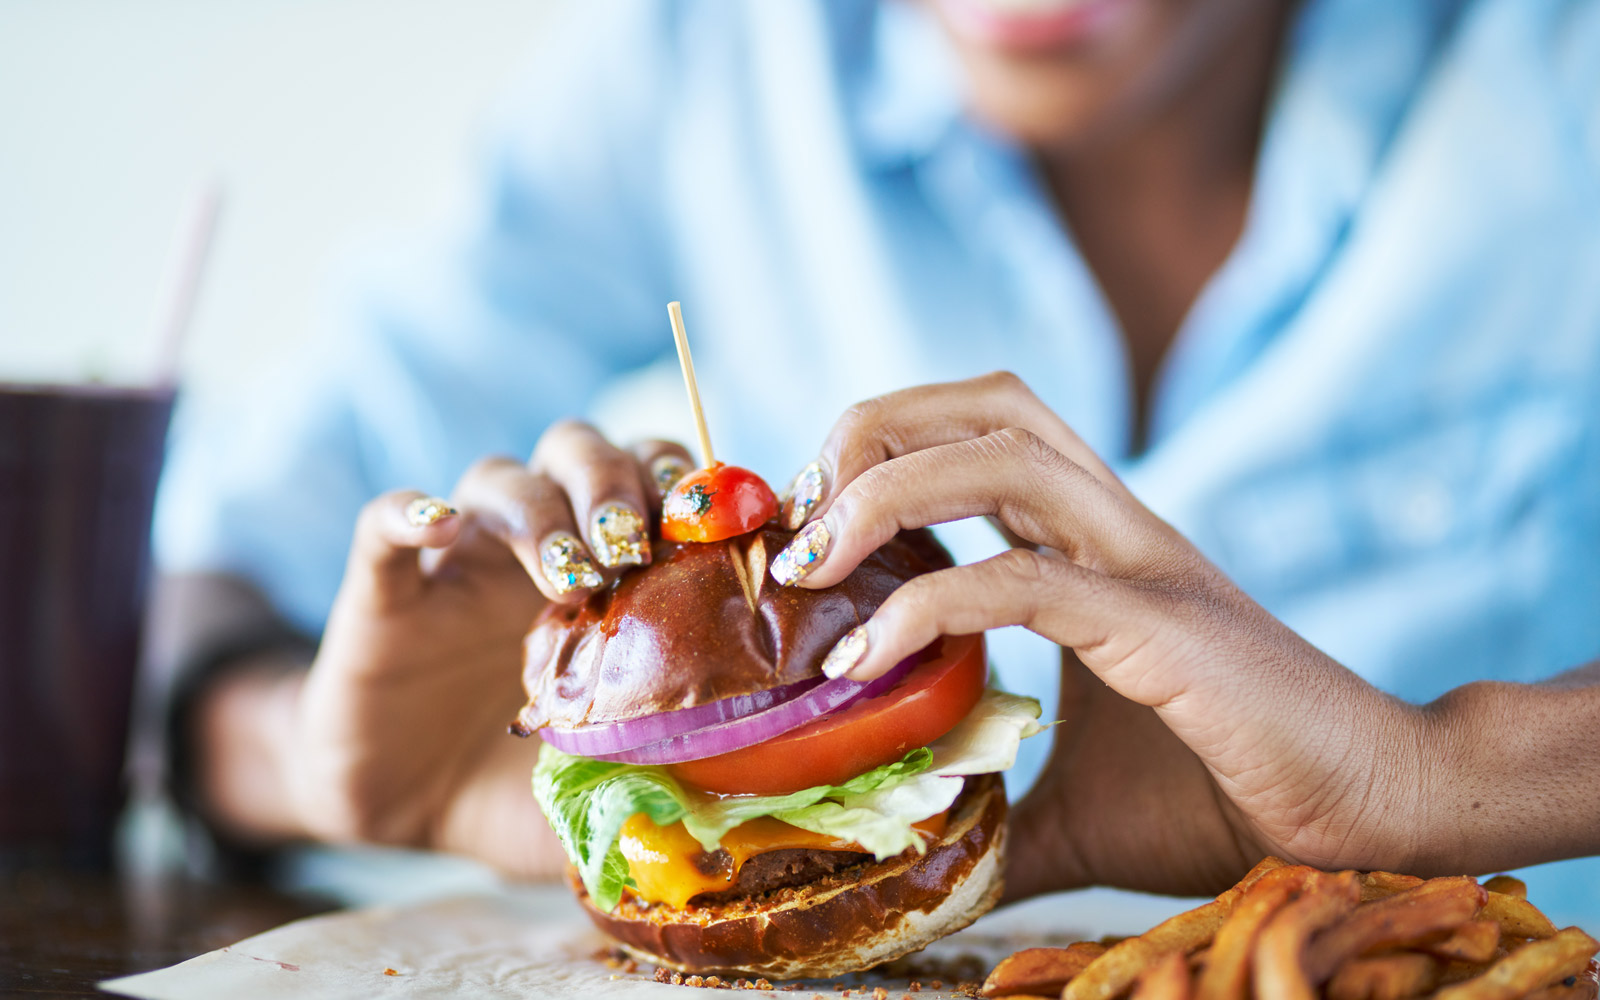 african american woman about to eat vegan meatless cheese burger at restaurant